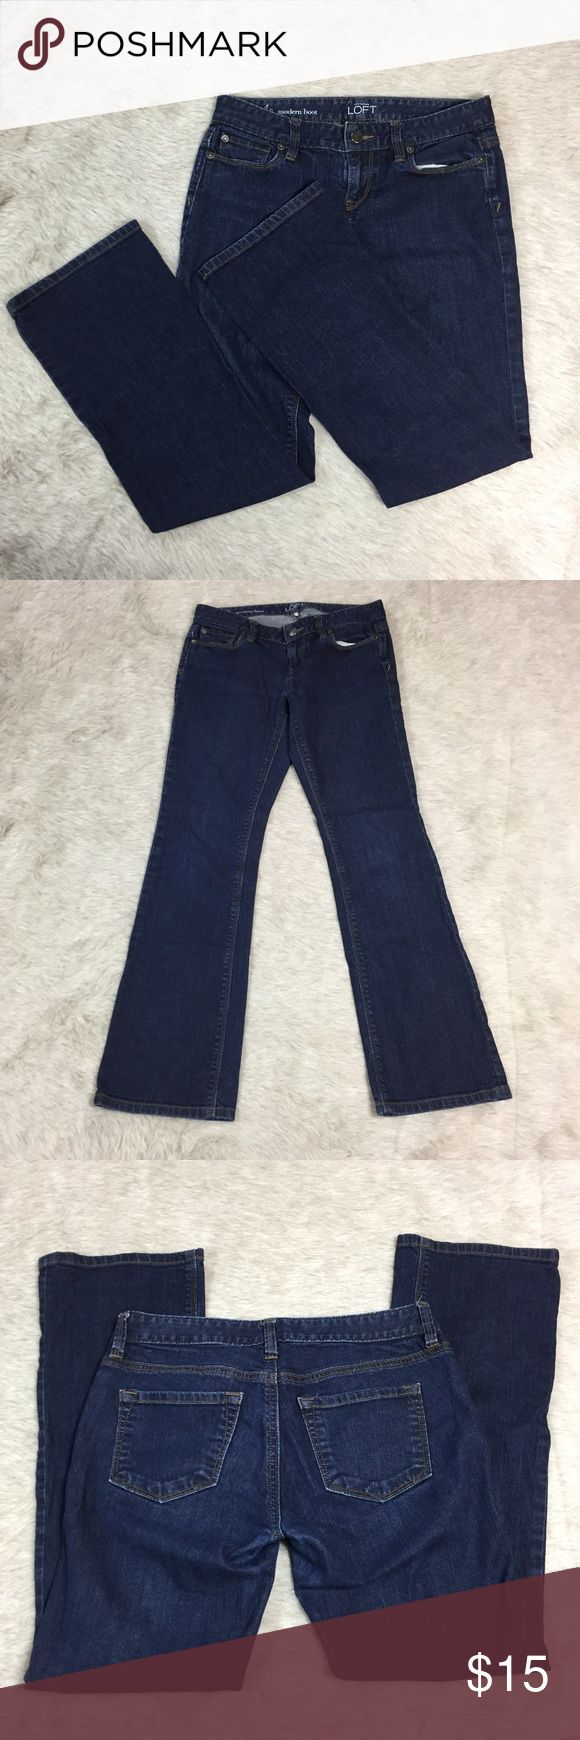 LOFT Modern Boot Jeans 4 Petite Approximate measurements: waist 14.5in, length 36in, inseam 28in. Gently used. Very slight fading in crotch area but no pilling. See photos. LOFT Jeans Boot Cut